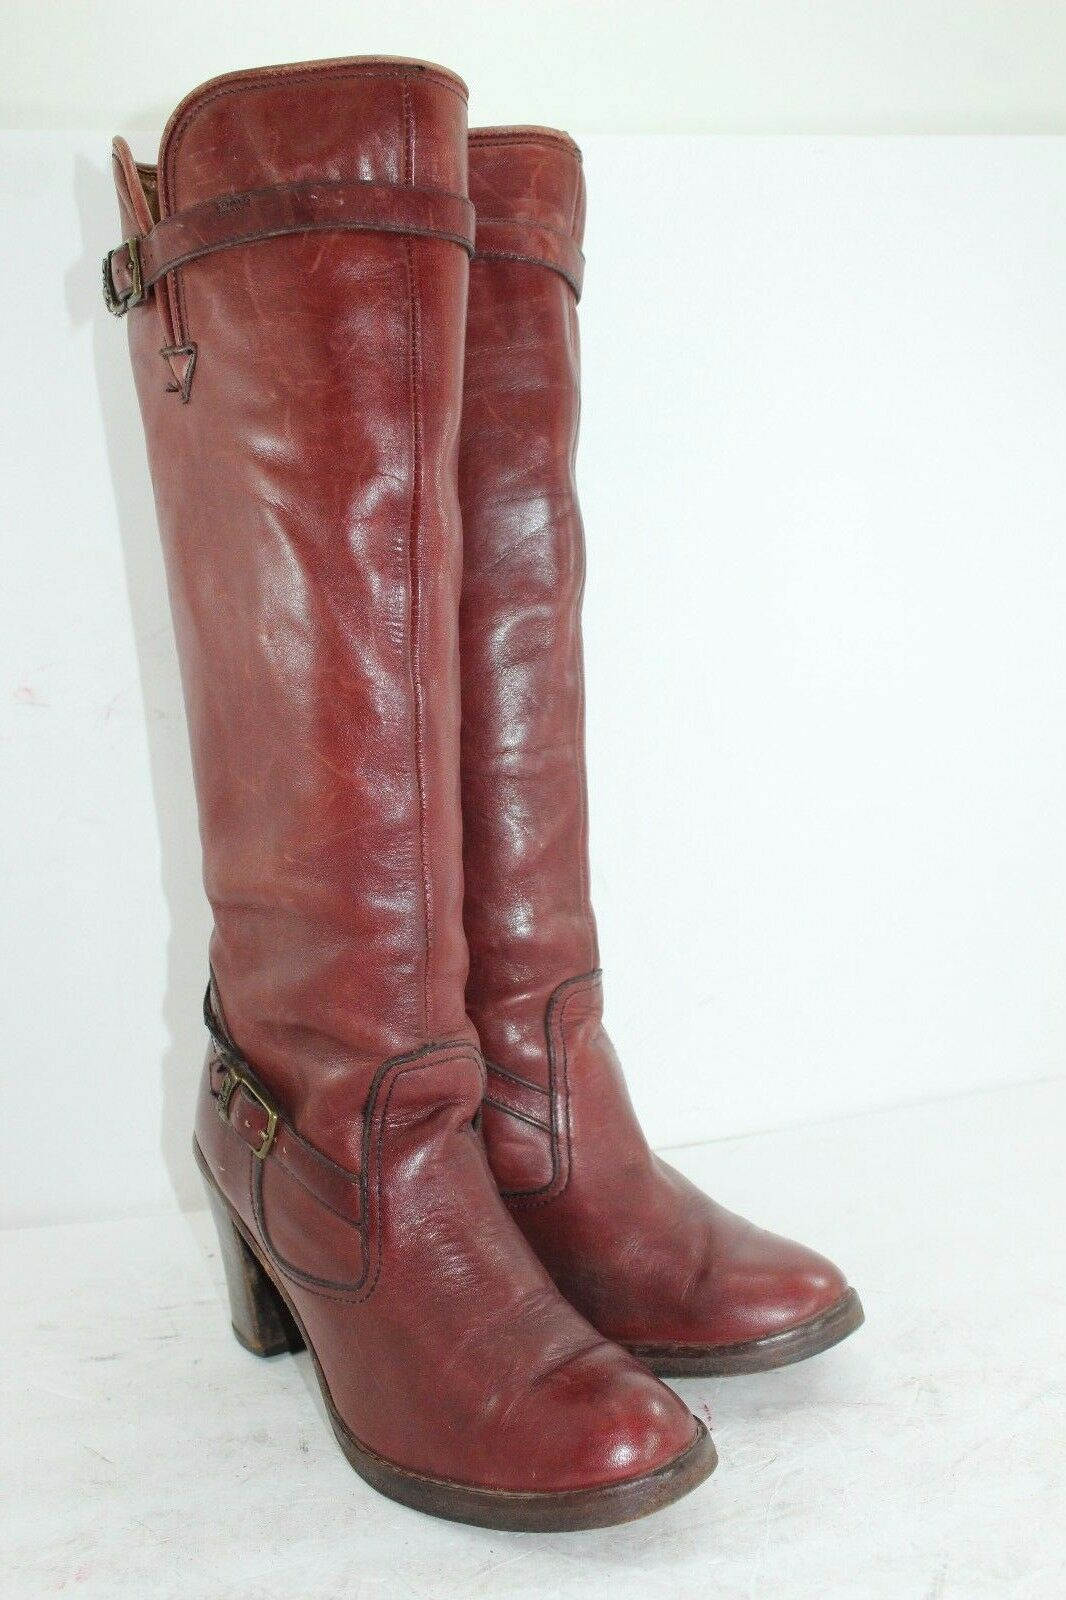 ZODIAC BOOTS MADE IN USA SZ 8.5 M BROWN IN GREAT CONDITION ALL LEATHER